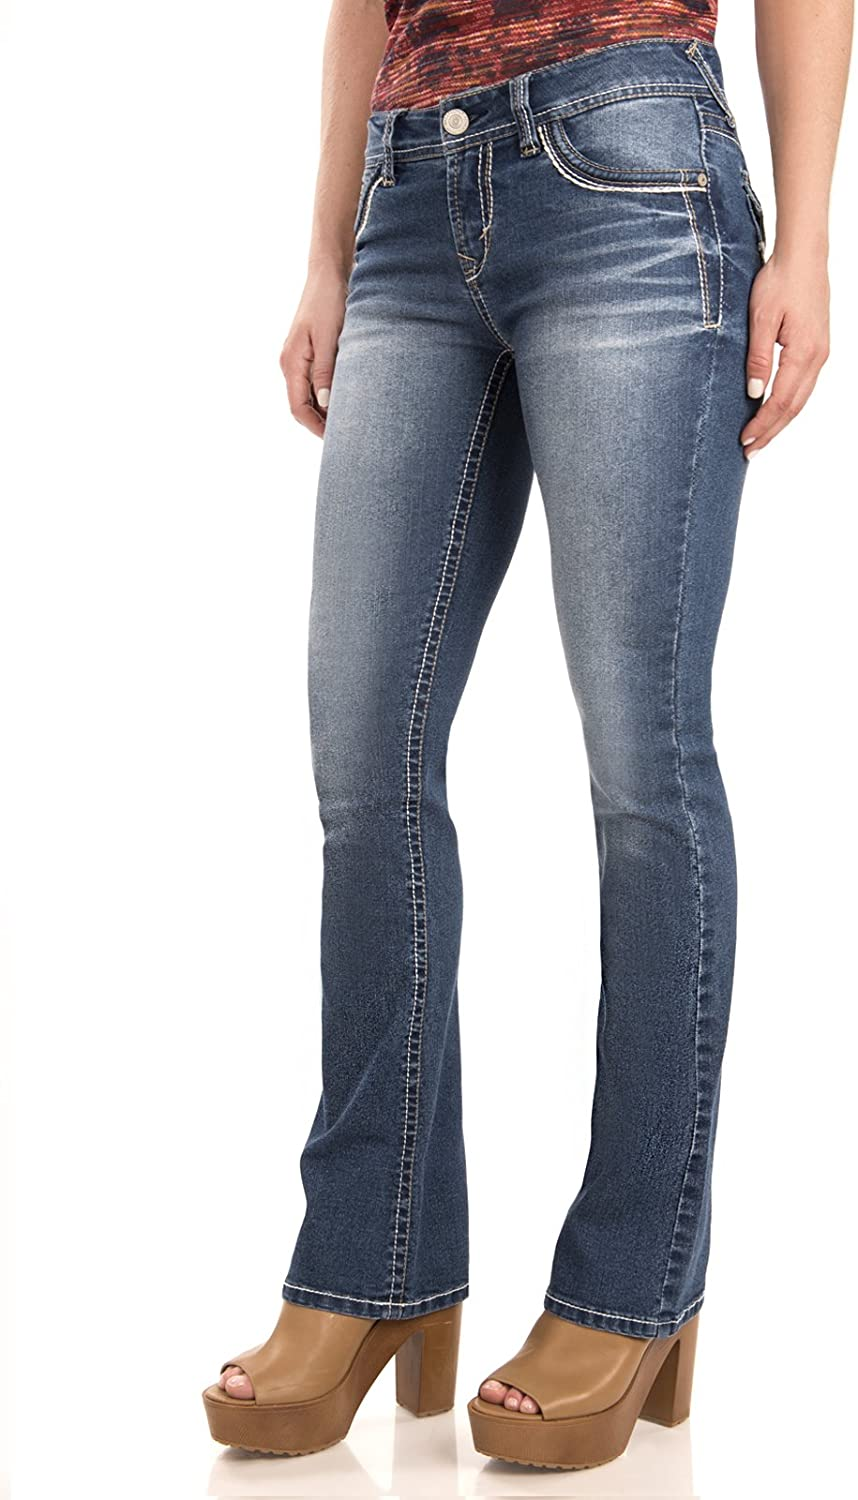 WallFlower Women's Juniors Legendary New products world's highest quality popular Denim ! Super beauty product restock quality top! Jeans Stretch Bootcut